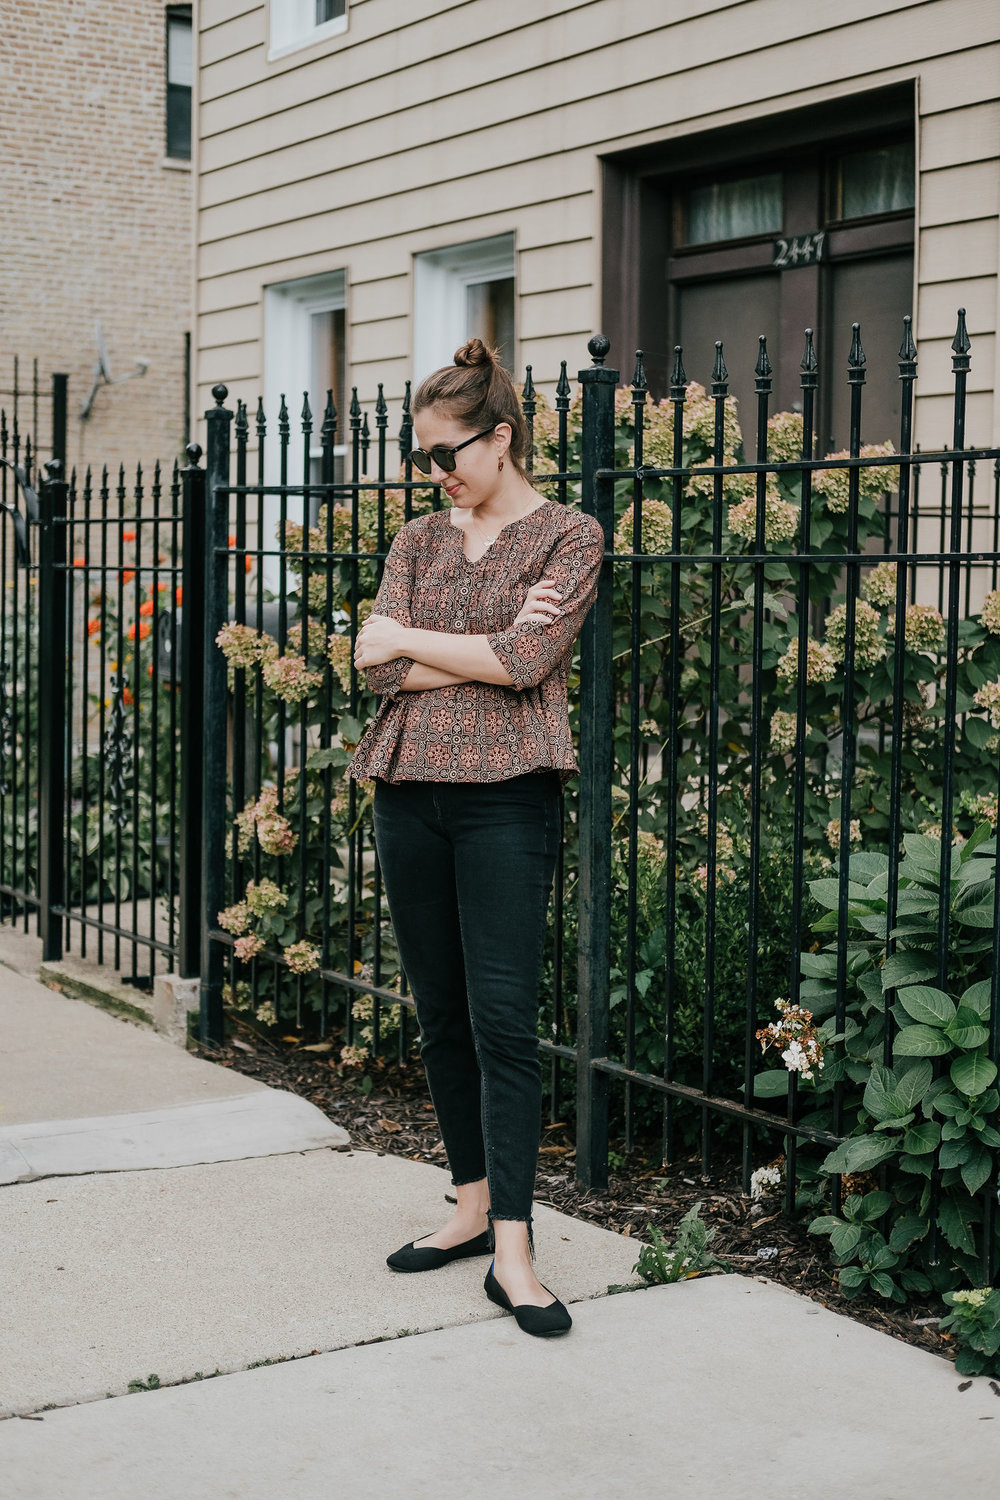 Casual Tuesday outfit - A Week Of Ethical Outfits With Heart With Carly Gerber From Hippie + Heart on The Good Trade